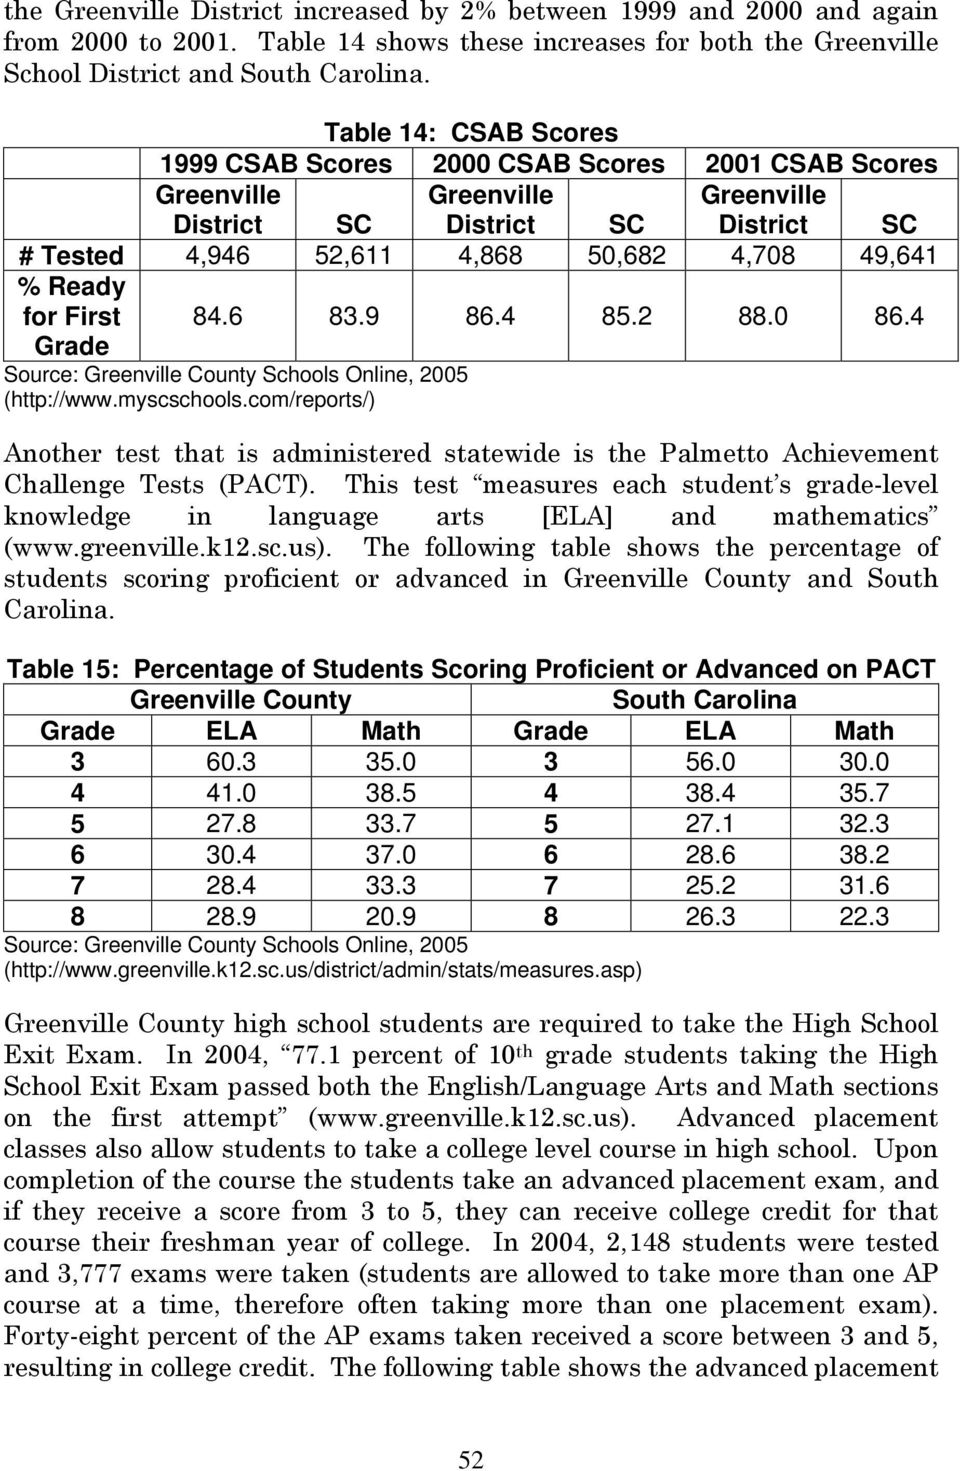 for First 84.6 83.9 86.4 85.2 88.0 86.4 Grade (http://www.myscschools.com/reports/) Another test that is administered statewide is the Palmetto Achievement Challenge Tests (PACT).